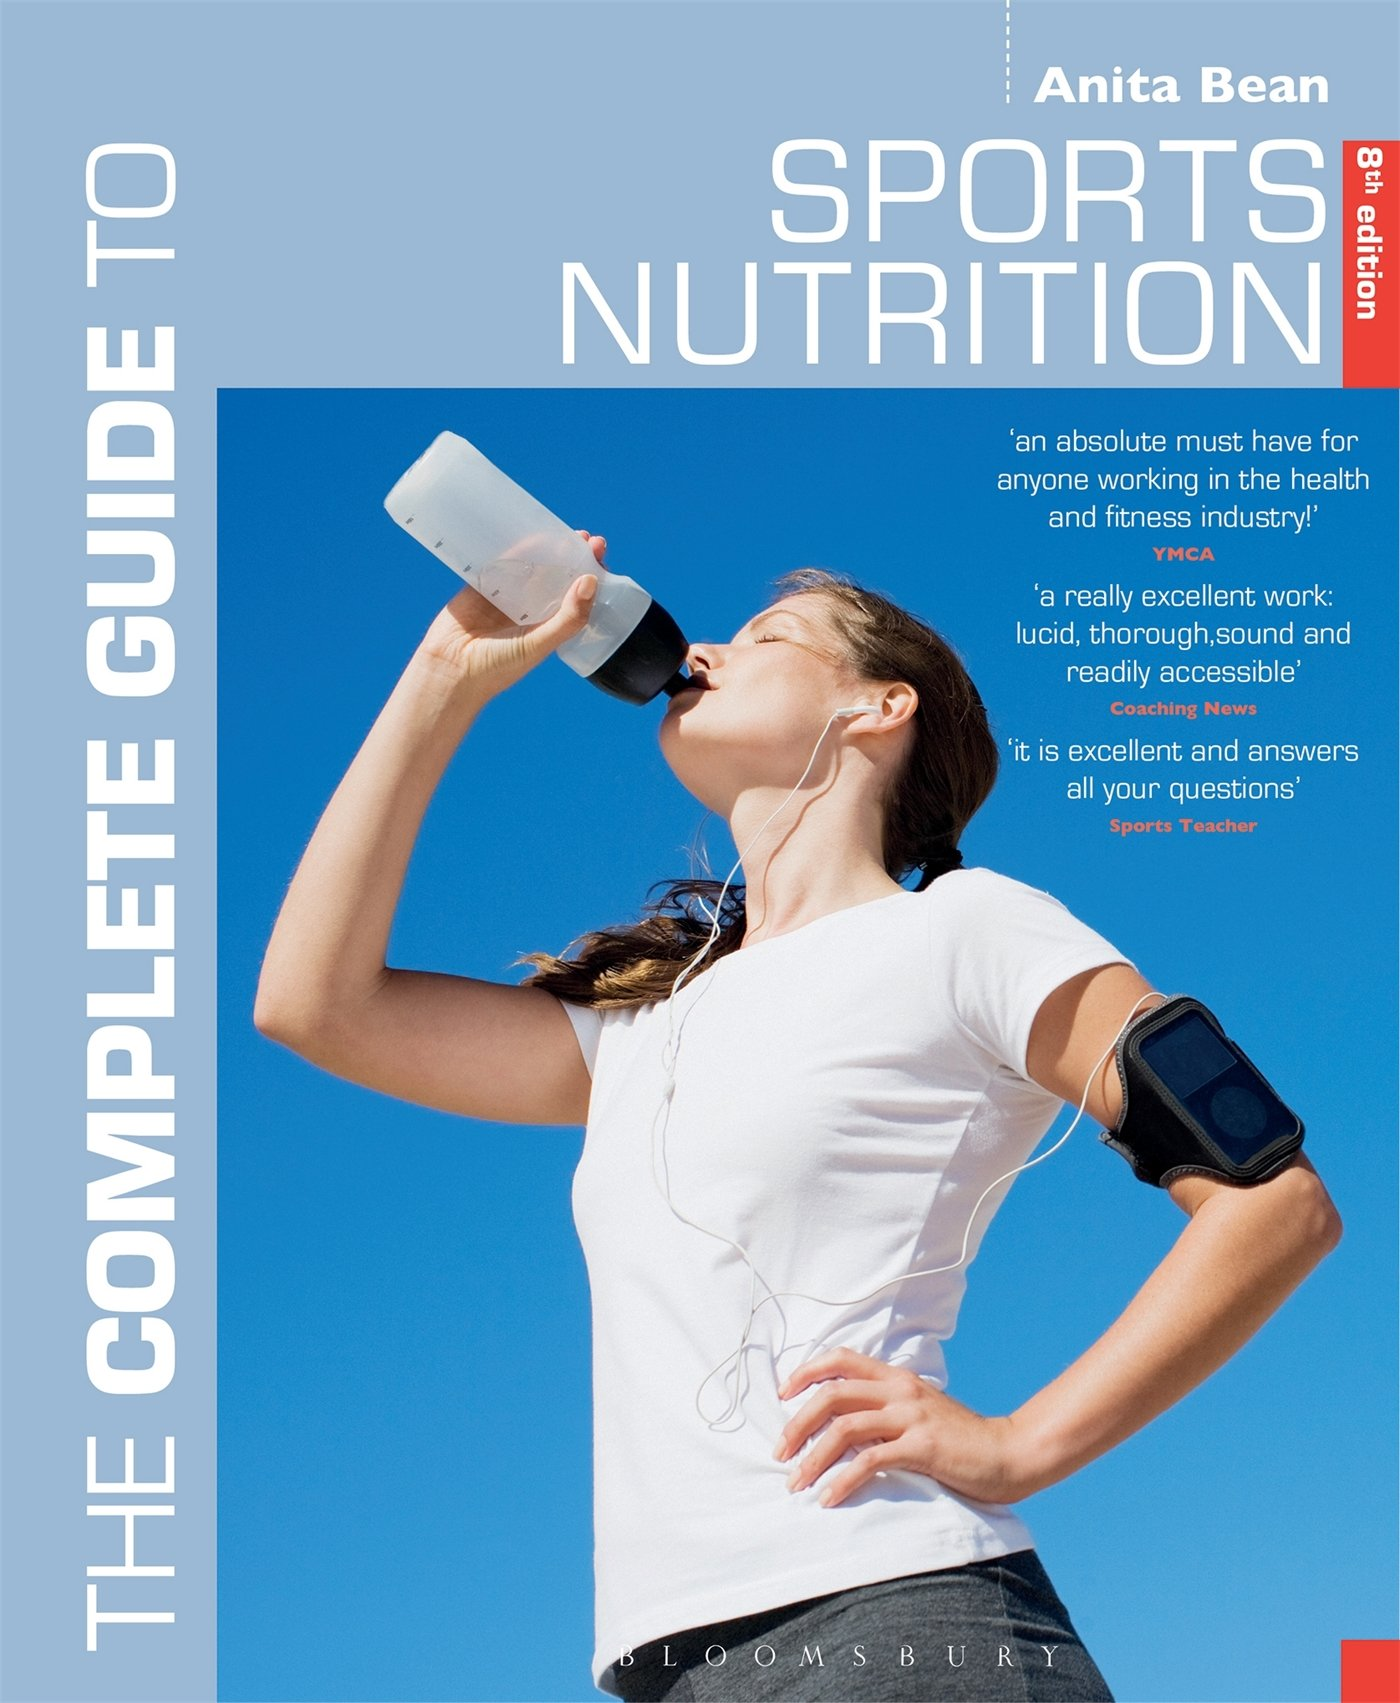 Complete Guide To Sports Nutrition Complete Guides Bean Anita 9781472924209 Amazon Com Books